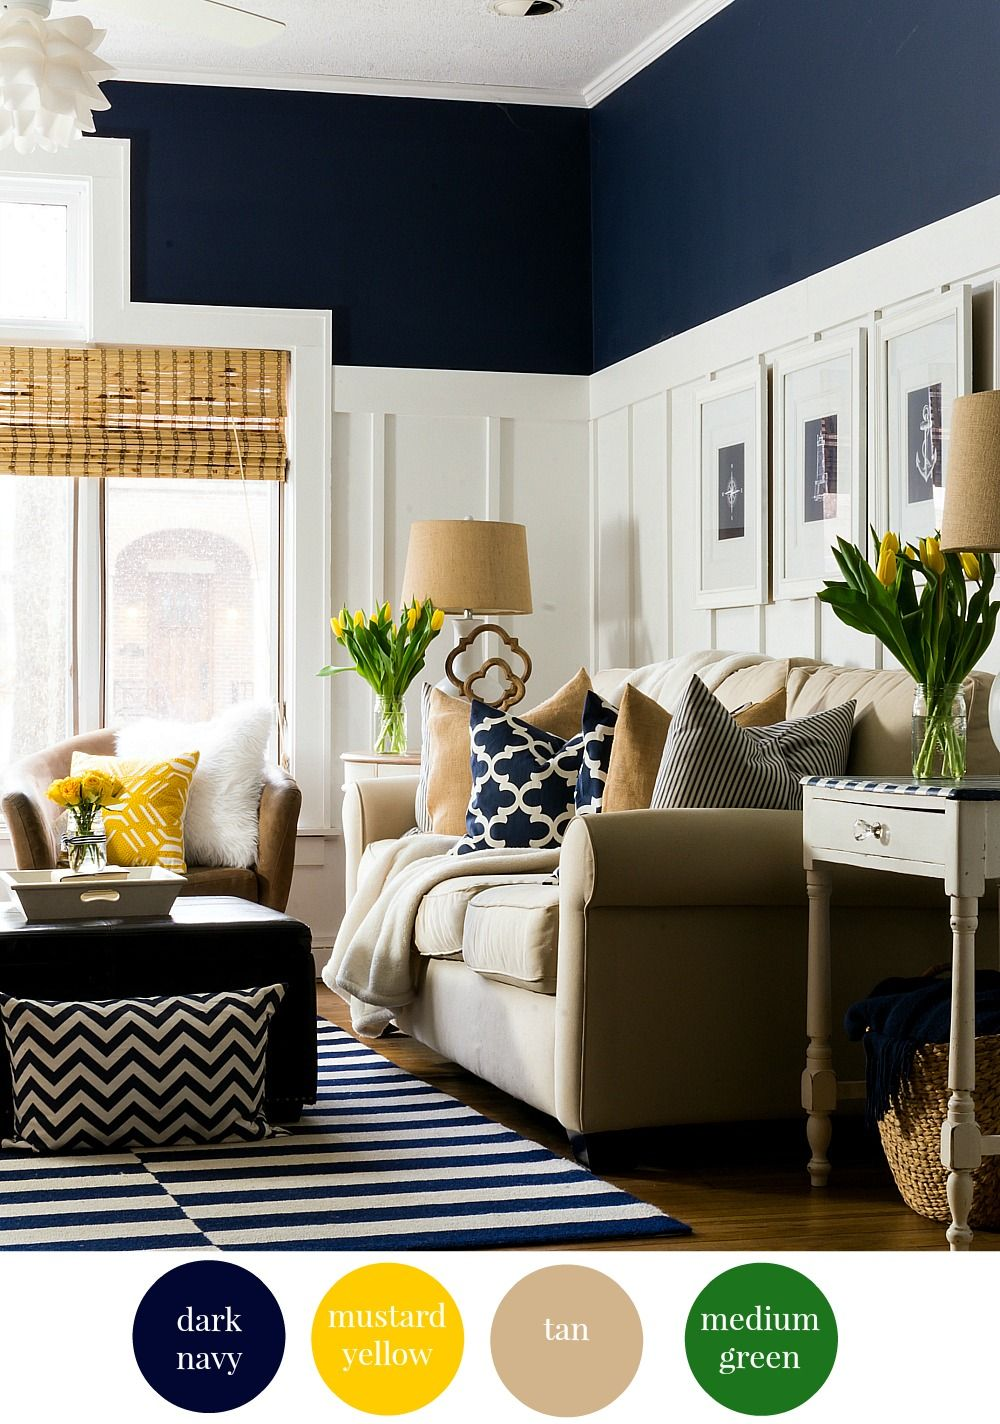 Choosing The Right Paint Colors + Design Inspiration #livingroomcolorschemeideas